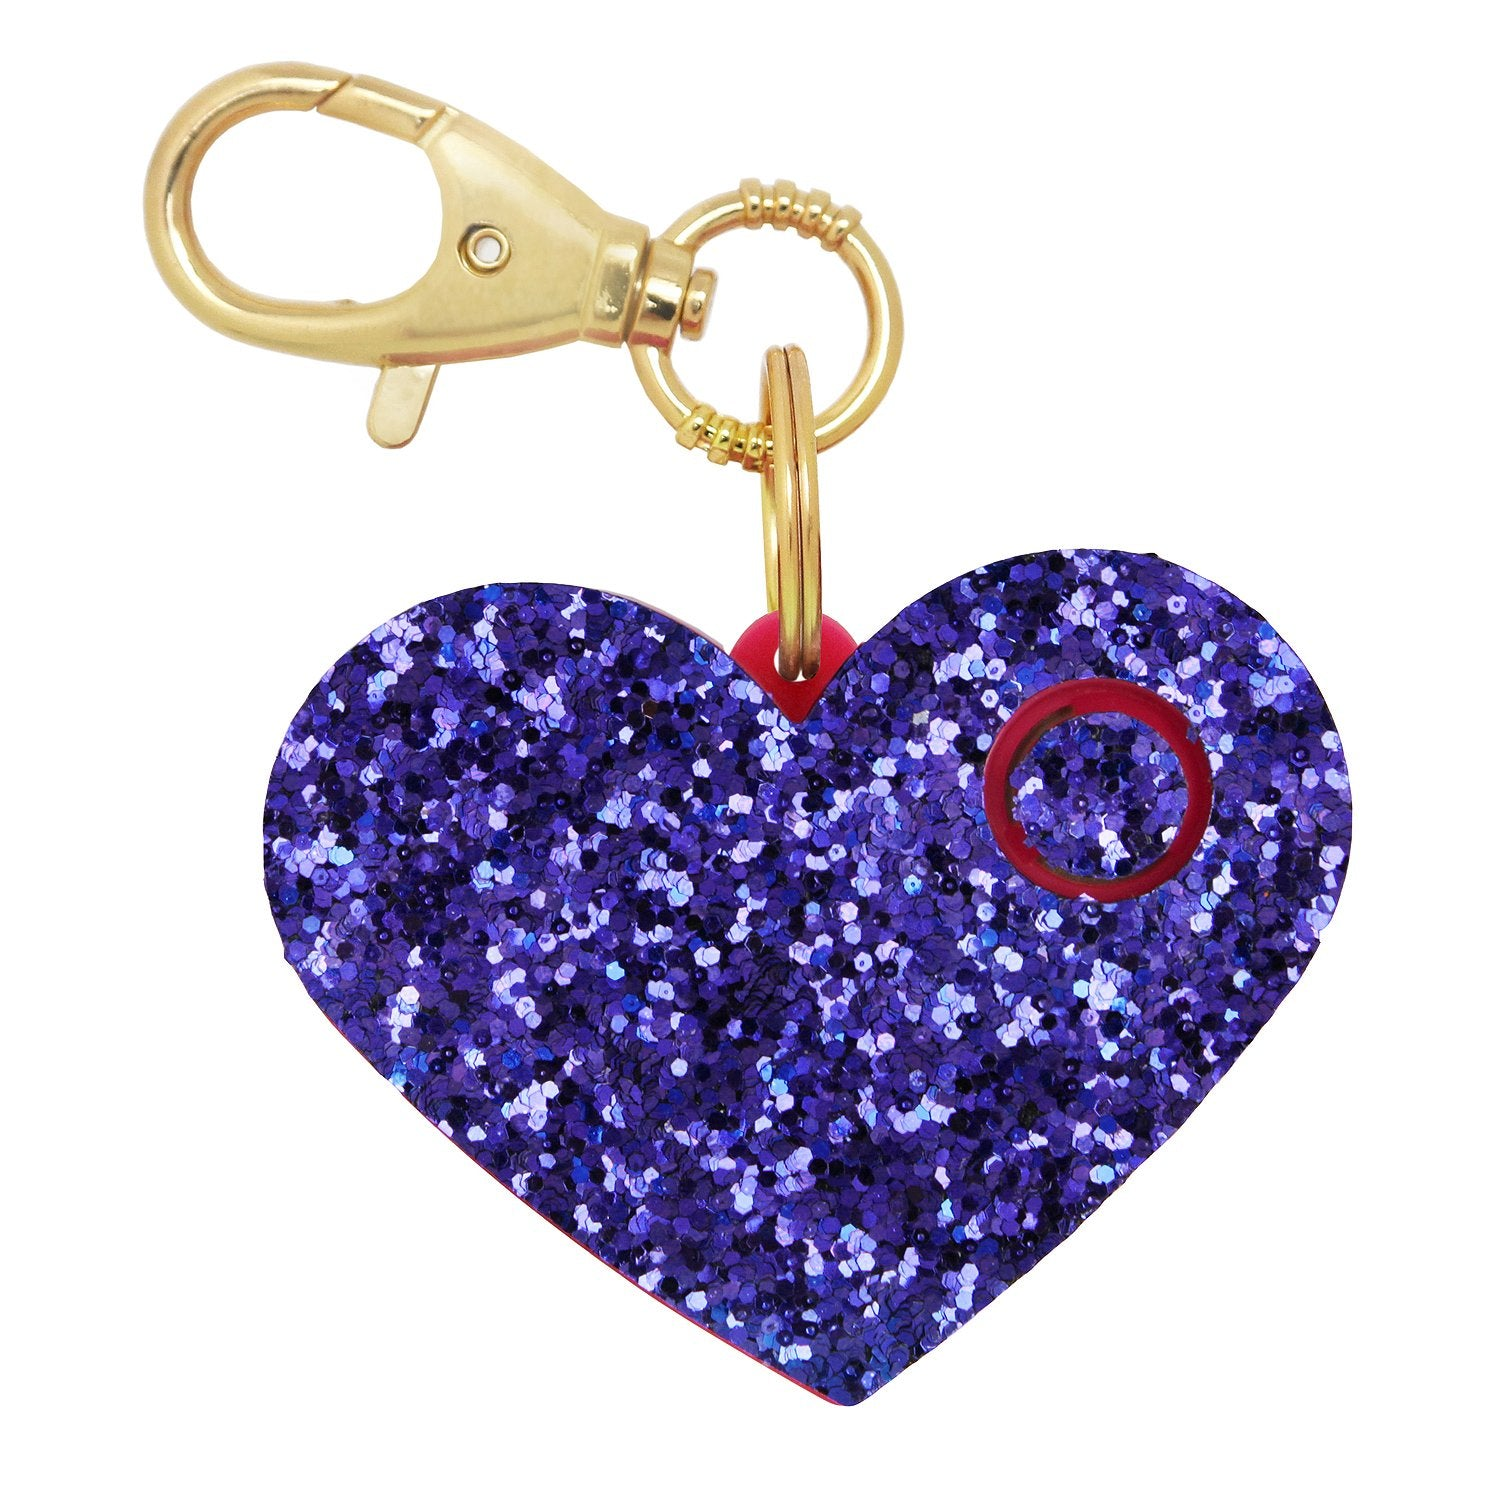 Personal Security Alarm - Glitter Heart (Purple FRONT)